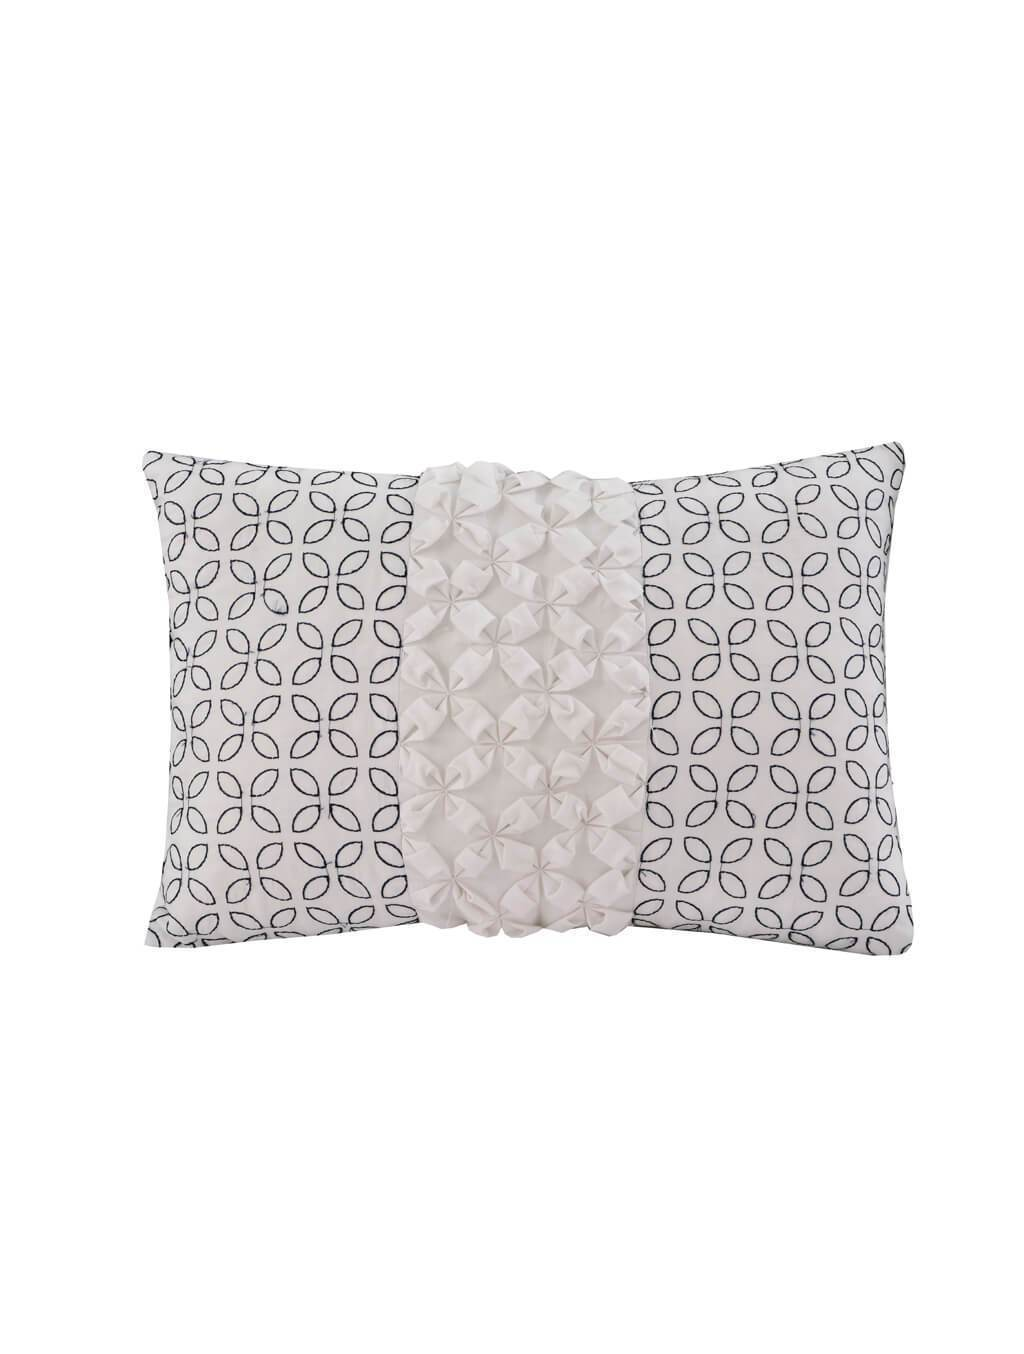 Fancy Damask-Dec Pillow Cover PRINTED RANGE 180 TC HOMBEDCLU